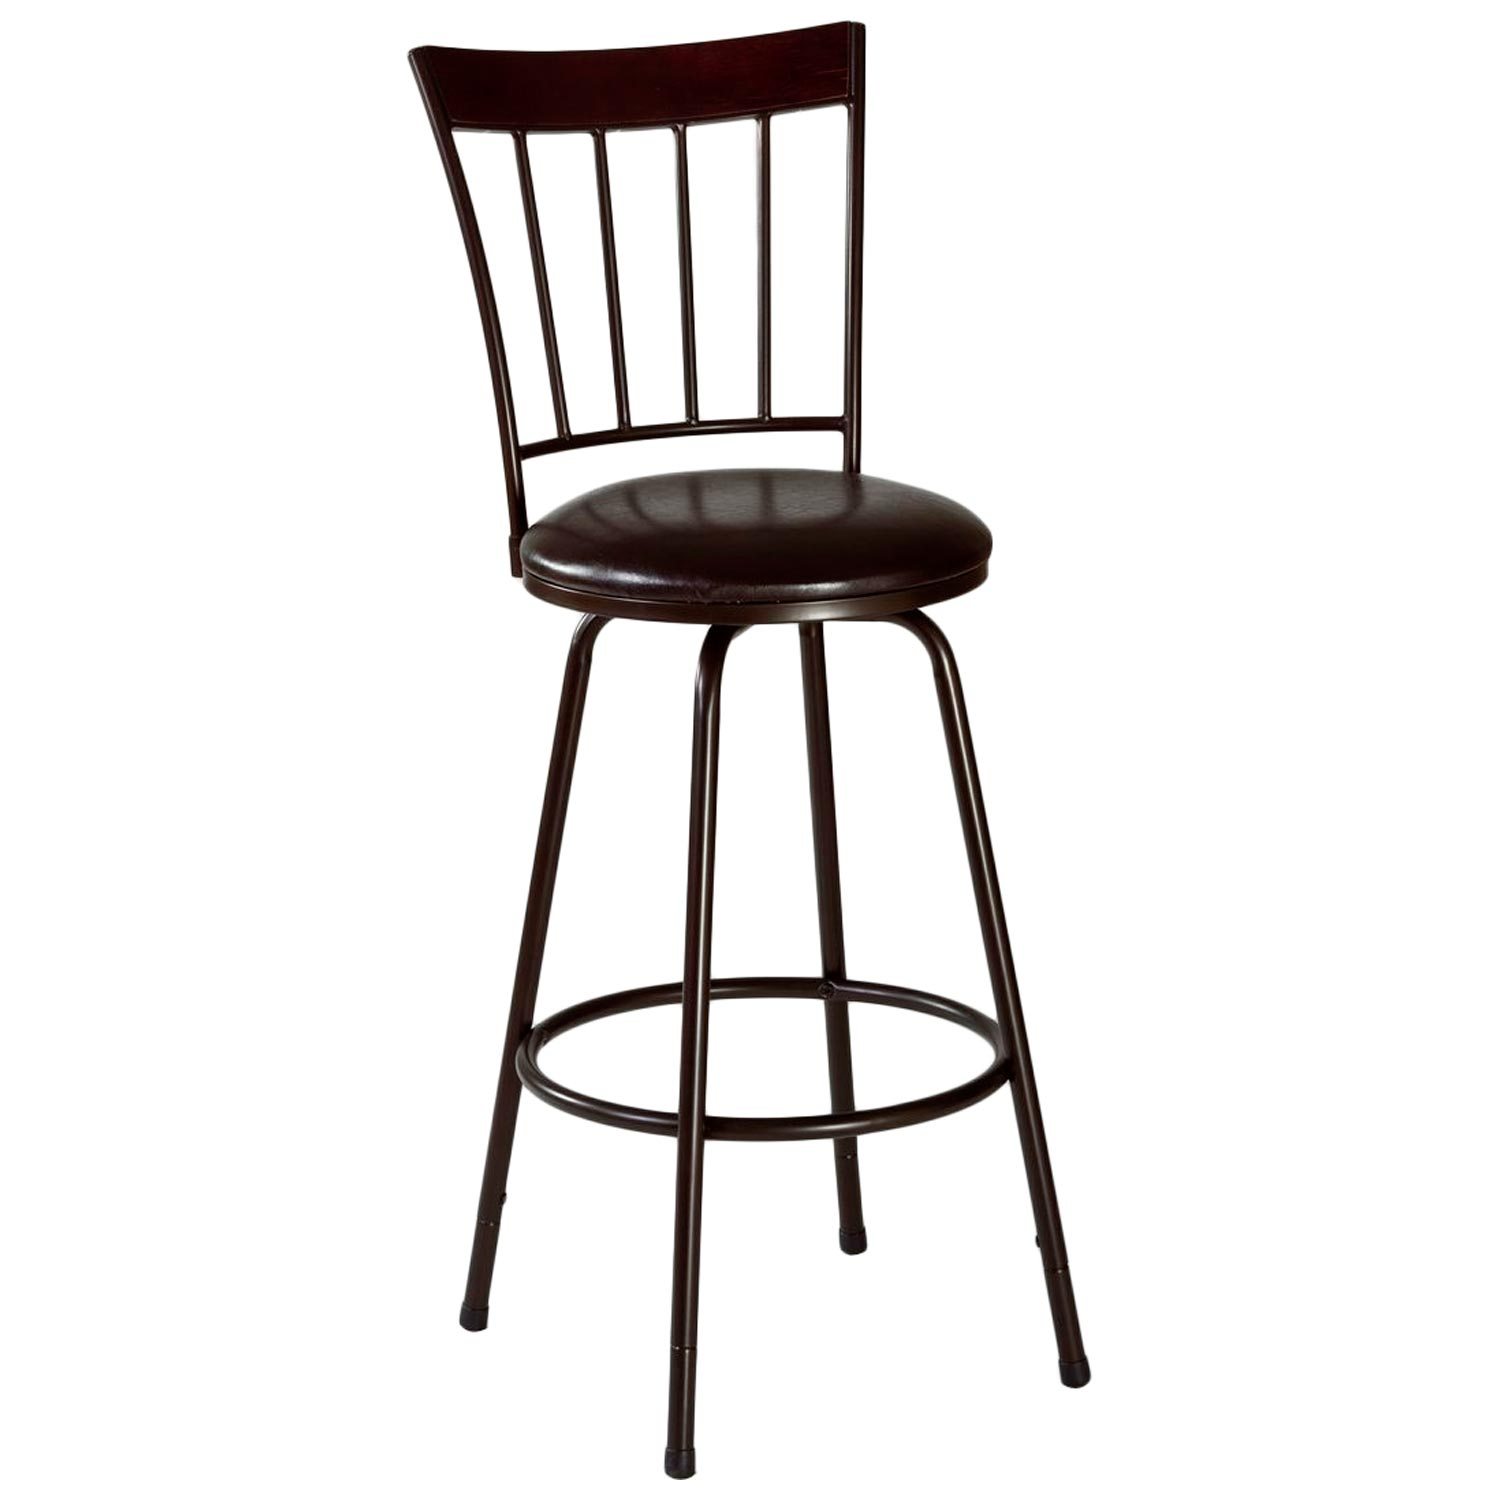 Cantwell Spindle Back Bar Stool - Nested Legs, Dark Brown - HILL-5258-830